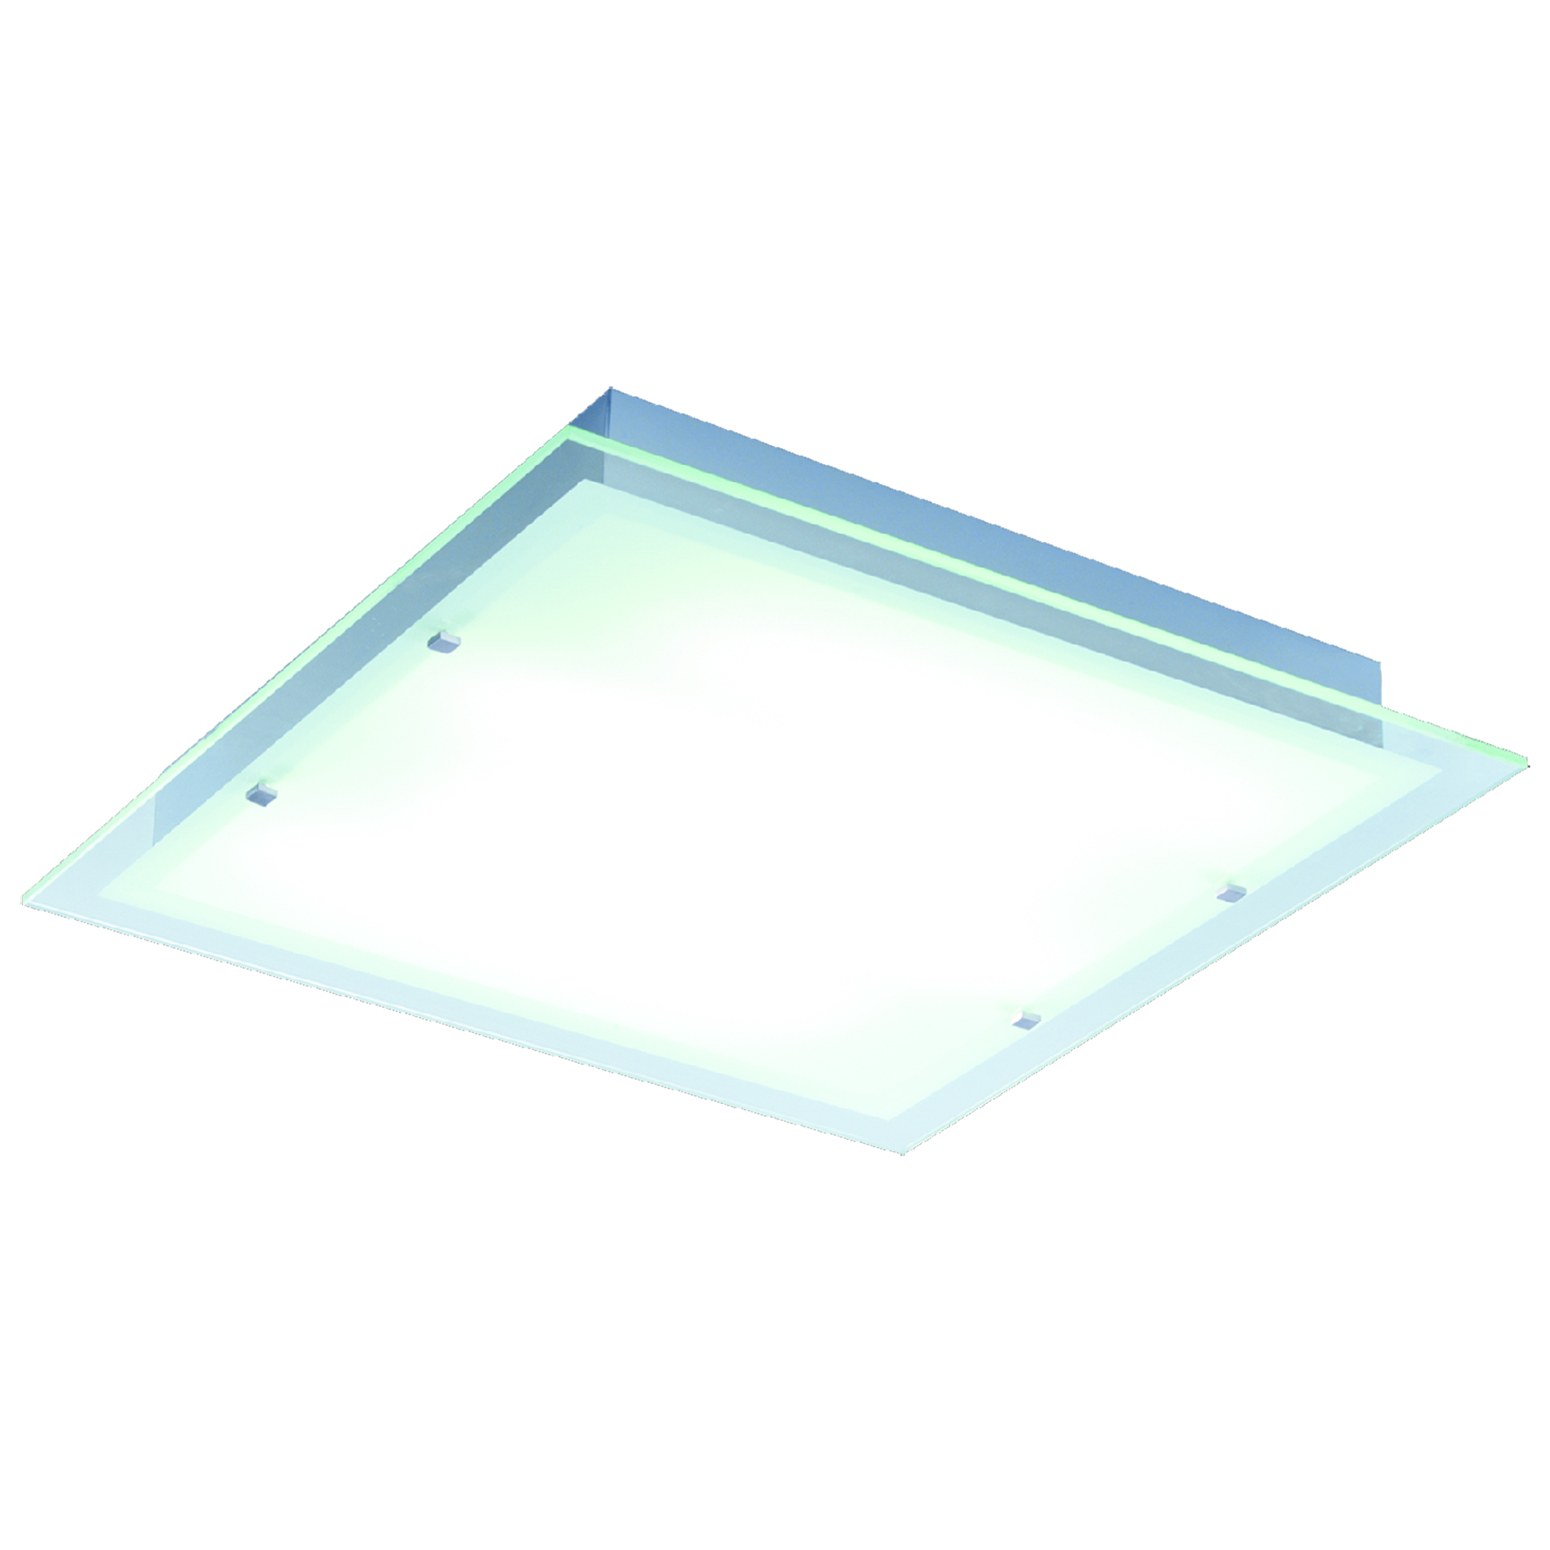 square ceiling light fixture by et  eal - contempra square ceiling light fixture by et  eal